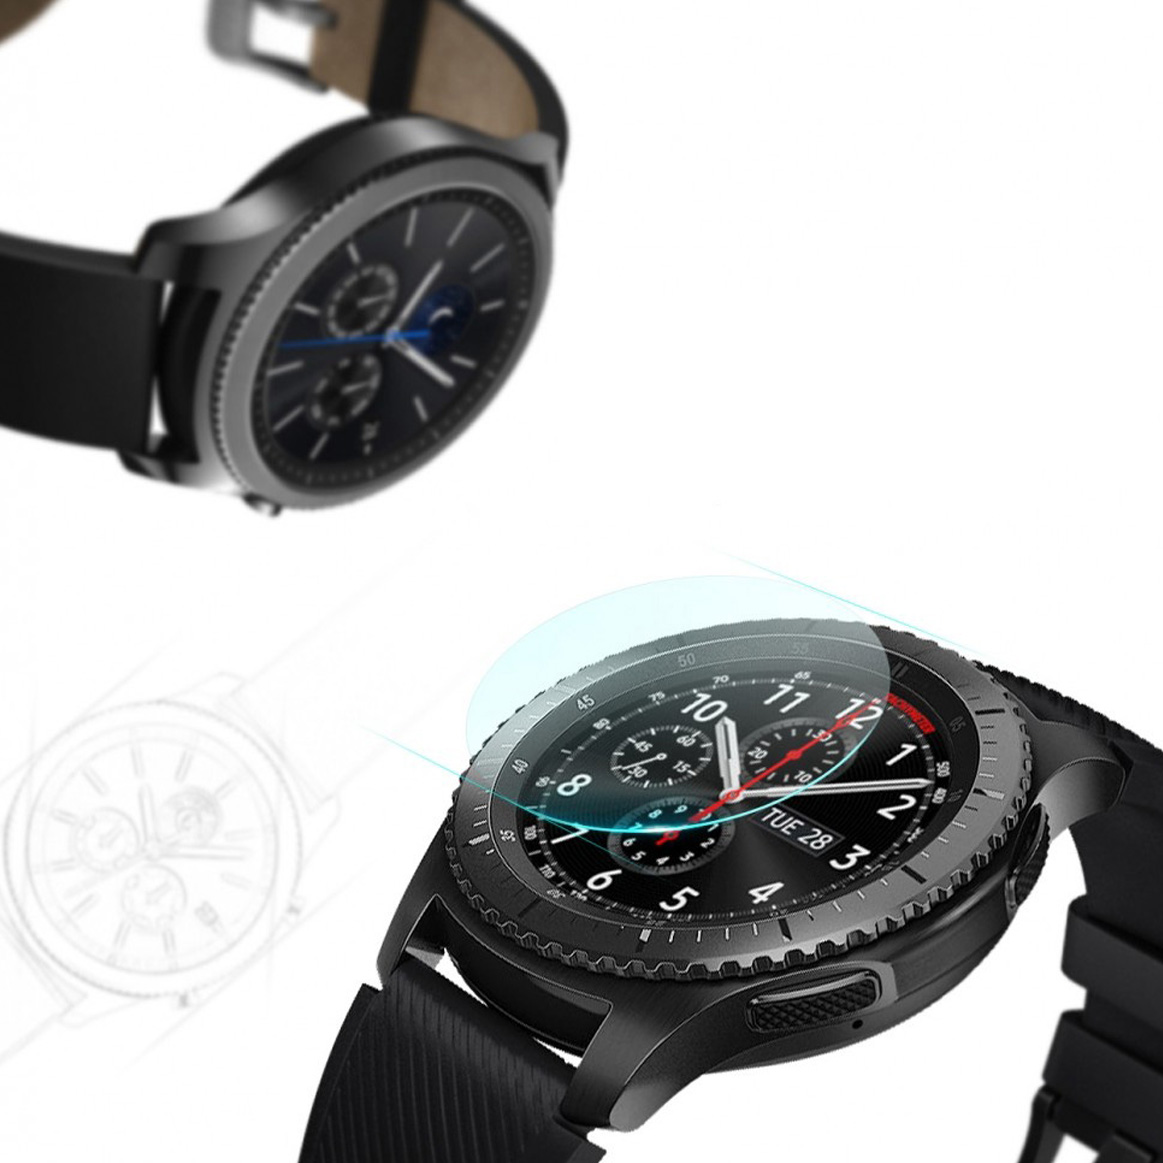 Szkło hartowane na ekran Ringke Invisible Defender Glass dla Galaxy Watch 46mm / Gear S3, 4 sztukii